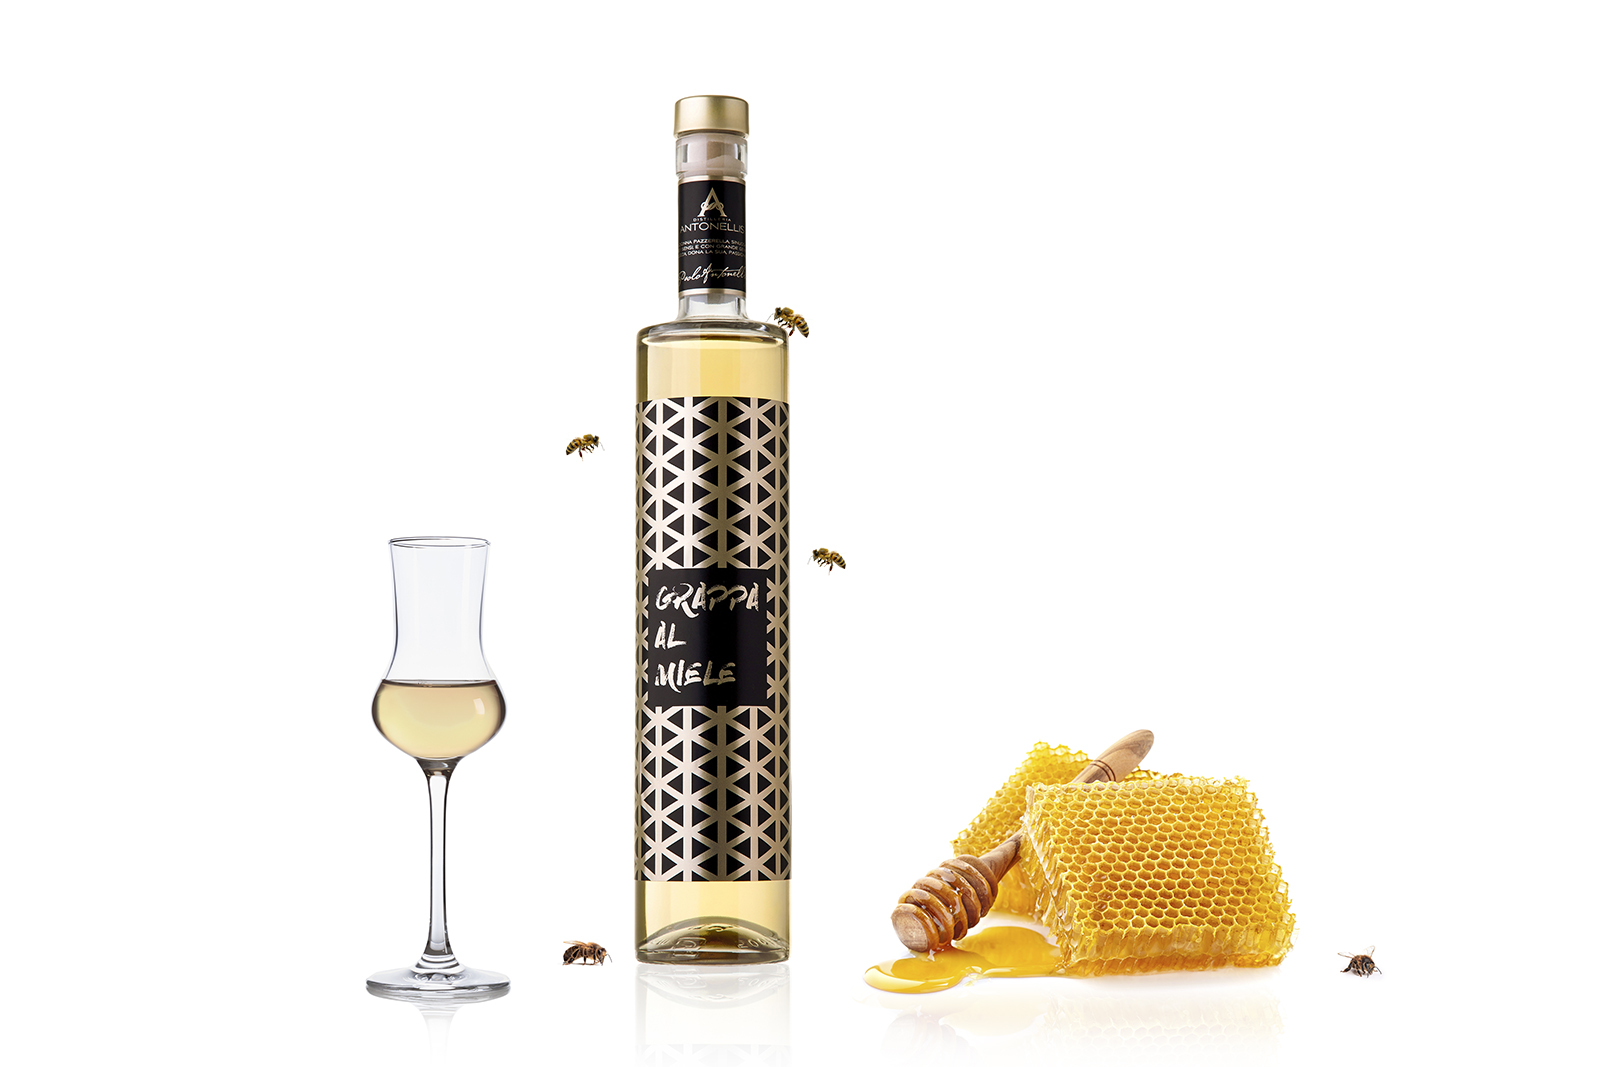 Grappa Made From the Infusion of Three Varieties Honey and Millions of Bees